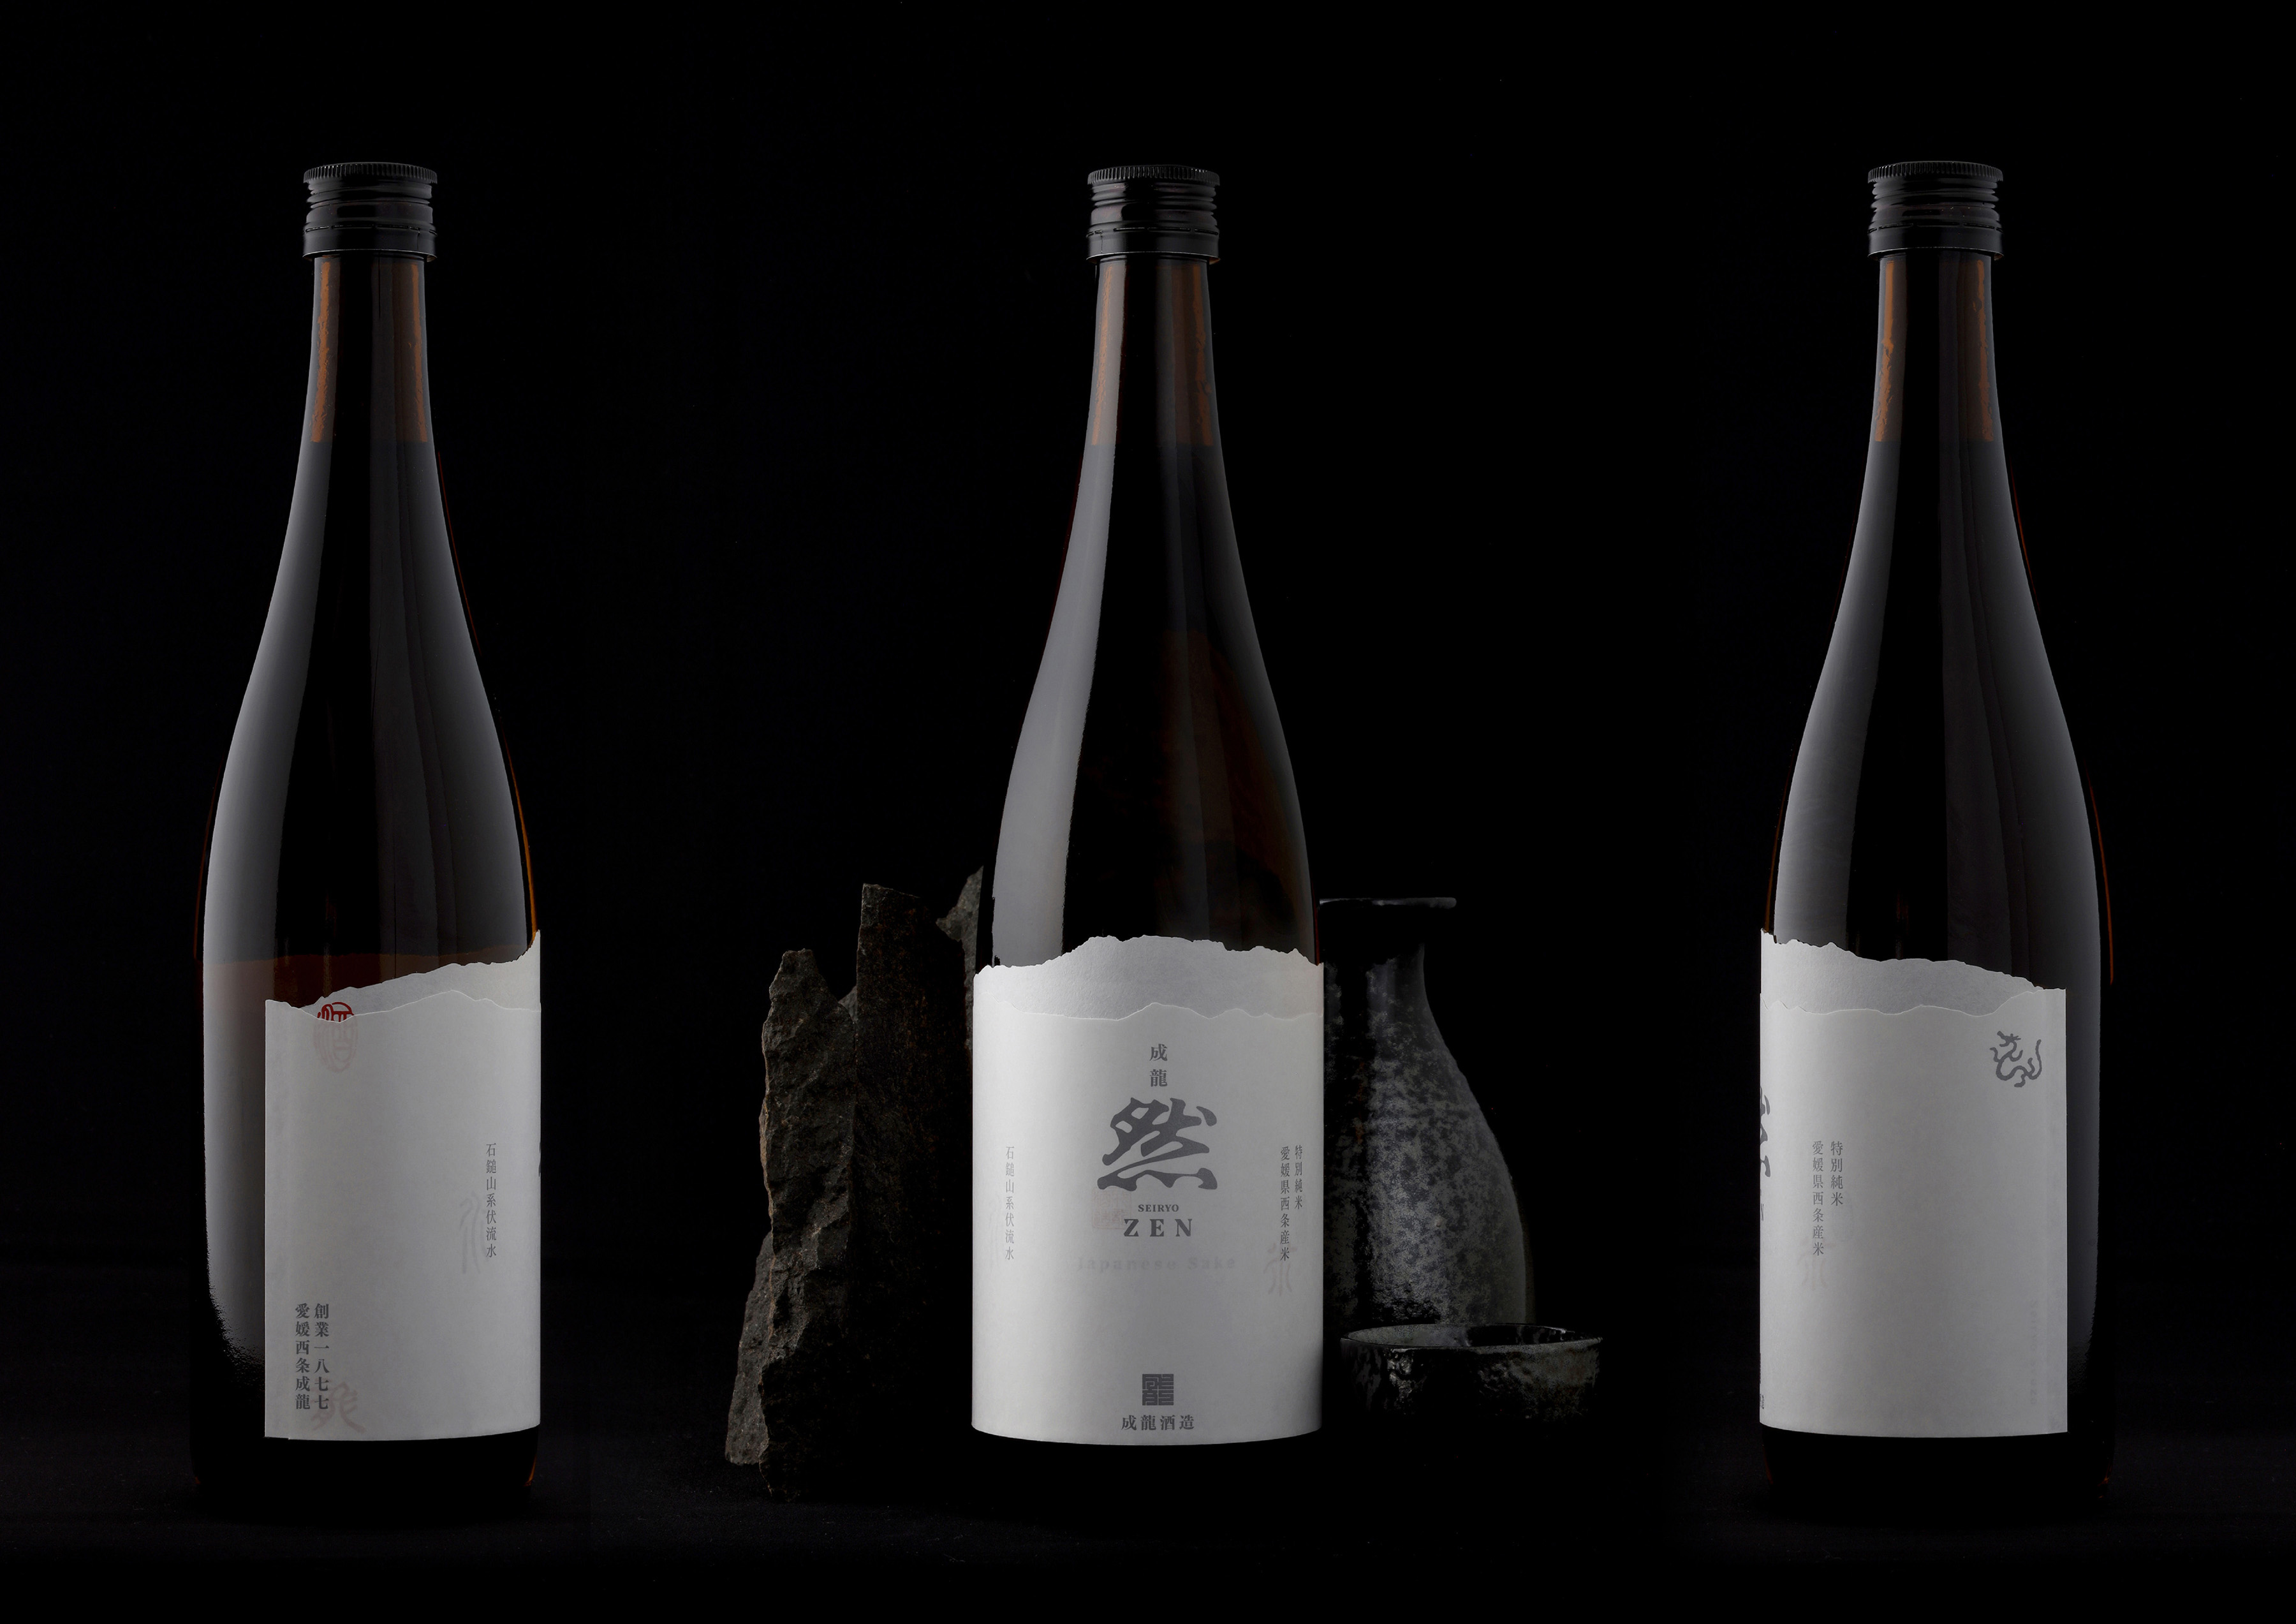 Japanese Sake Mt. Ishizuchi Motif and Label Design by Grand Deluxe